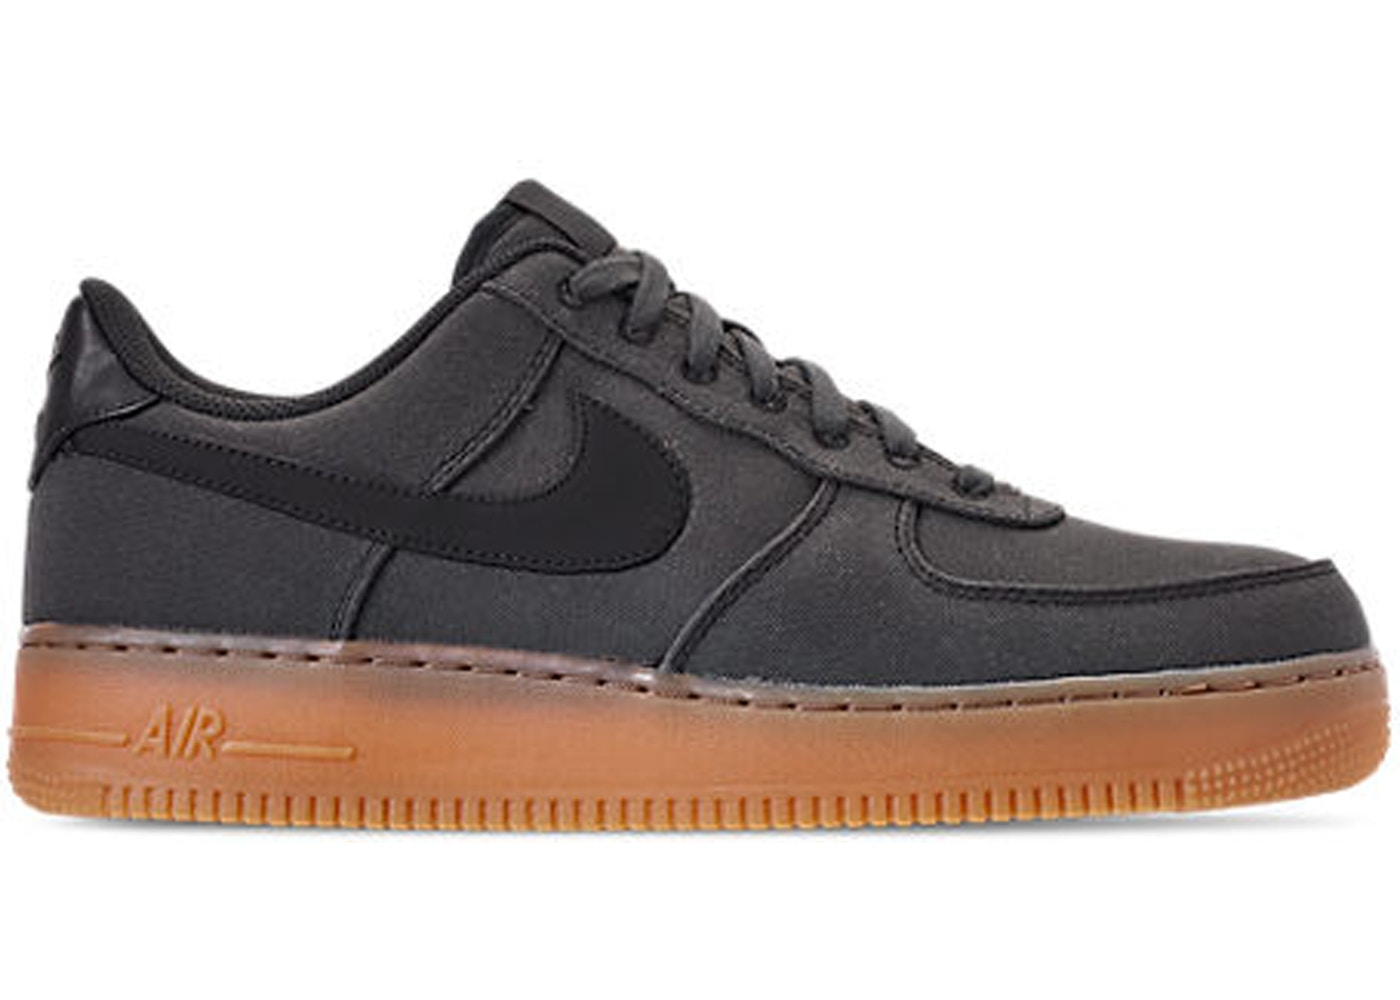 Cambiarse de ropa obesidad Hamburguesa  Nike Air Force 1 Low '07 Black Gum - AQ0117-002